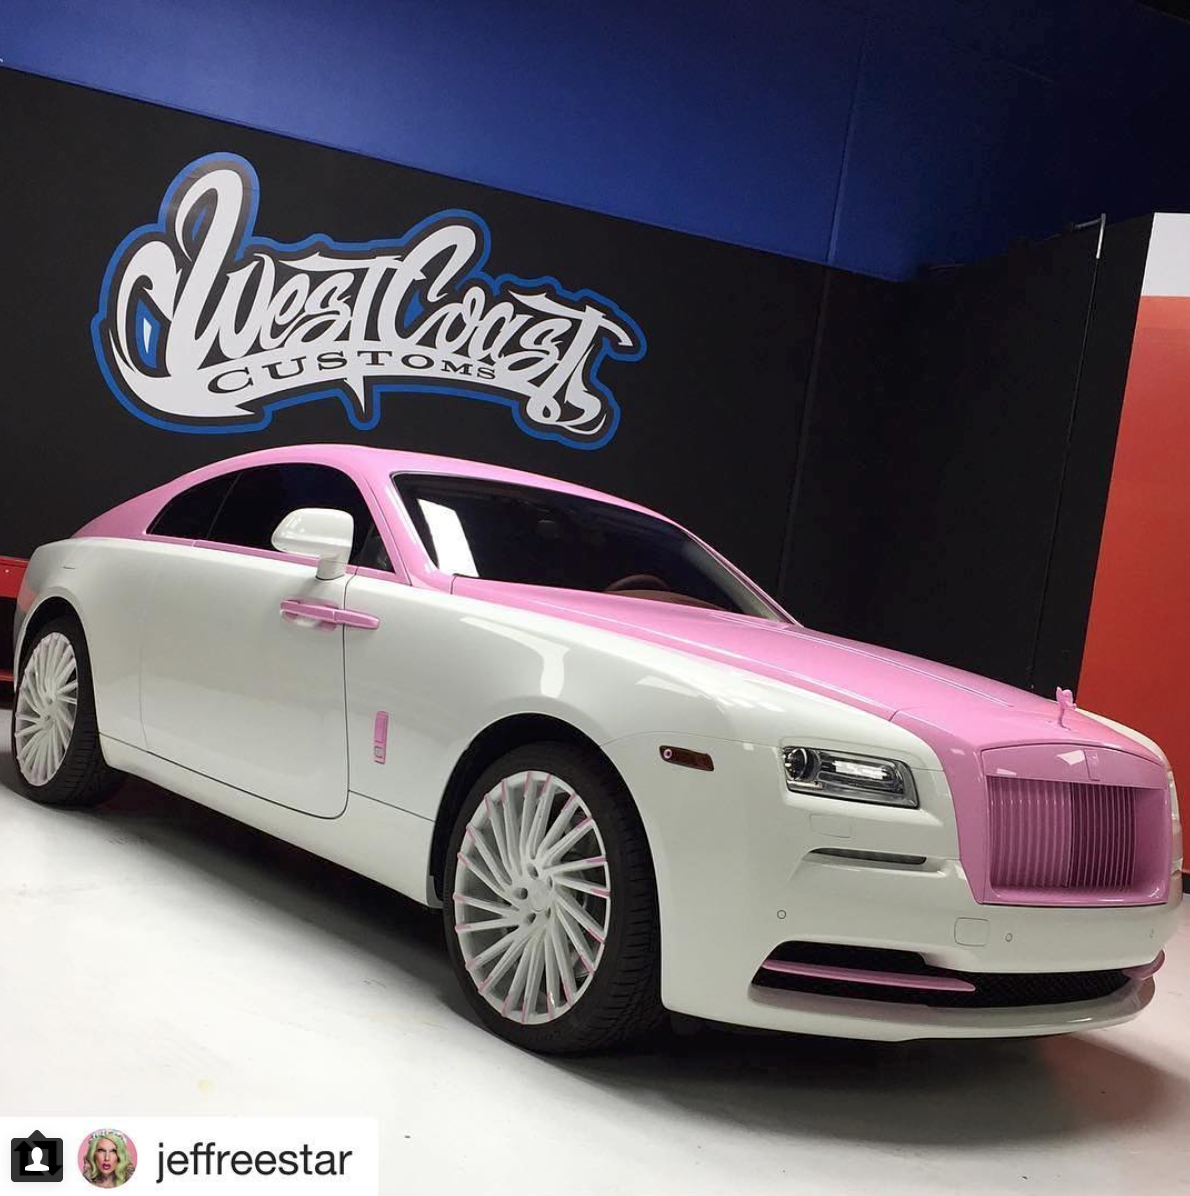 West Coast Customs Cars For Sale >> Jeffree Star Has Another New Rolls Royce | Celebrity Cars Blog